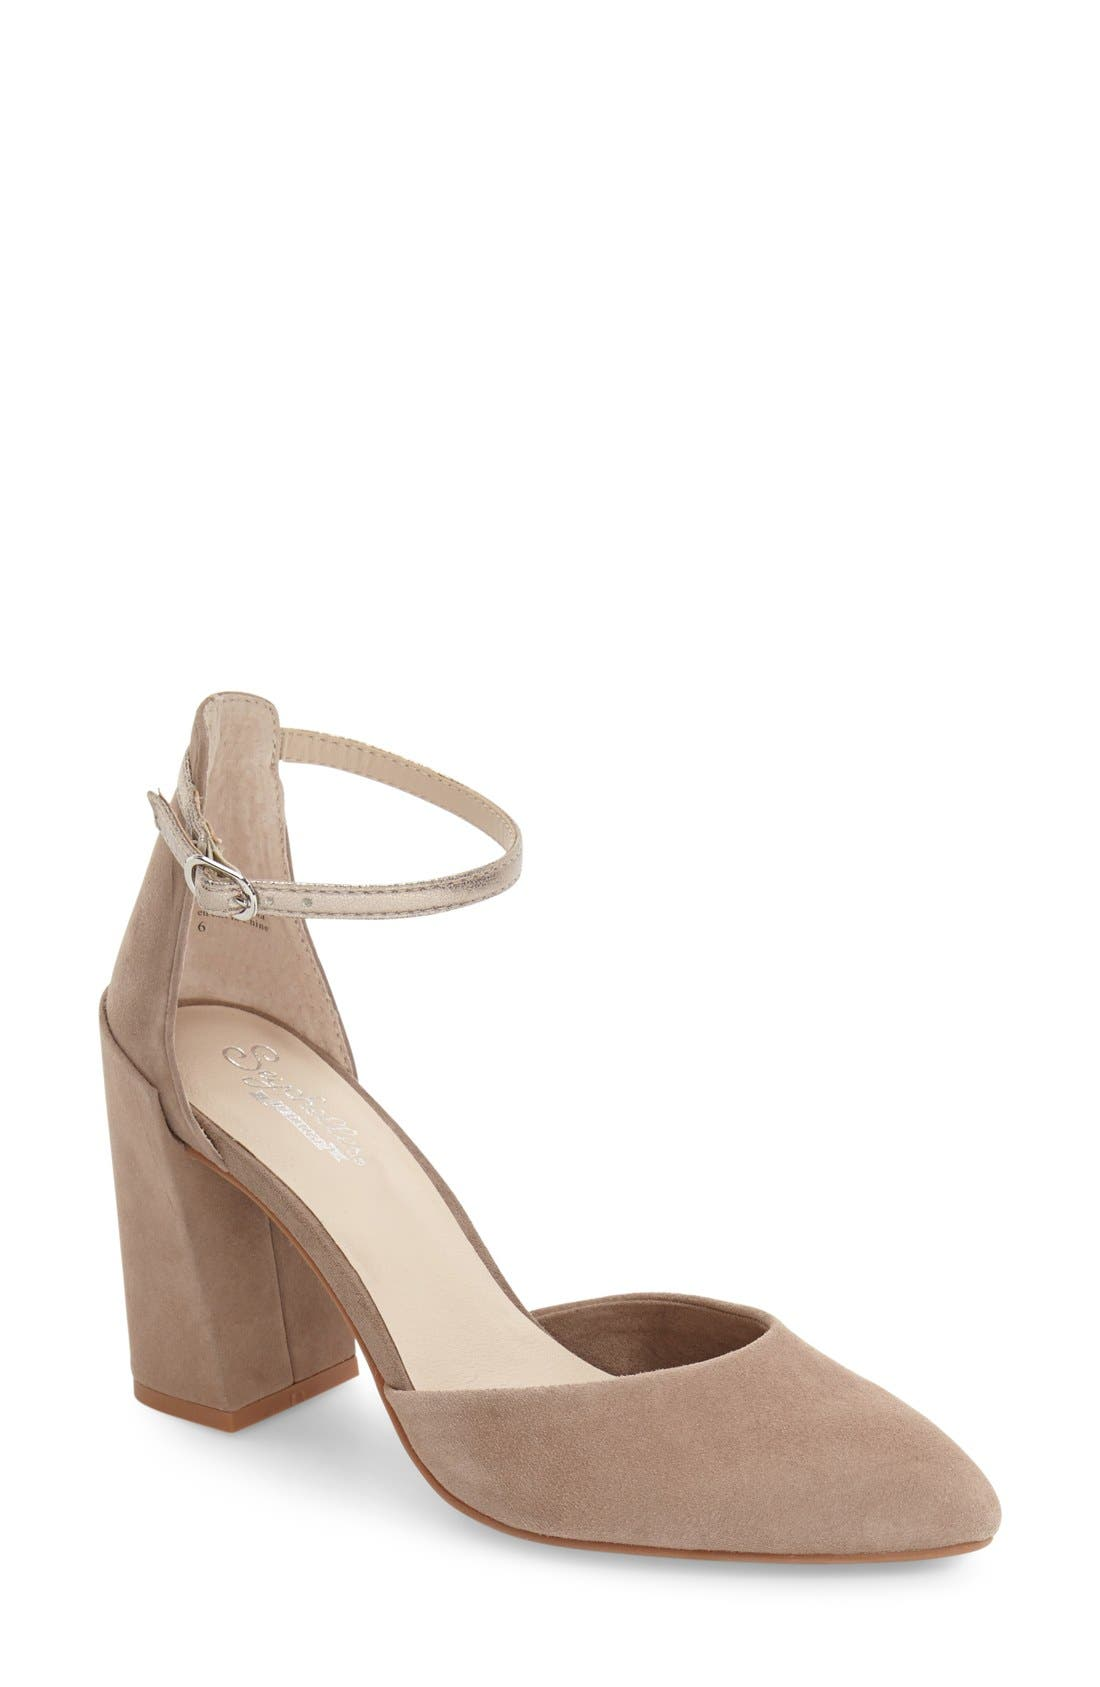 Alternate Image 1 Selected - Seychelles Gaggle Ankle Strap Pump (Women)